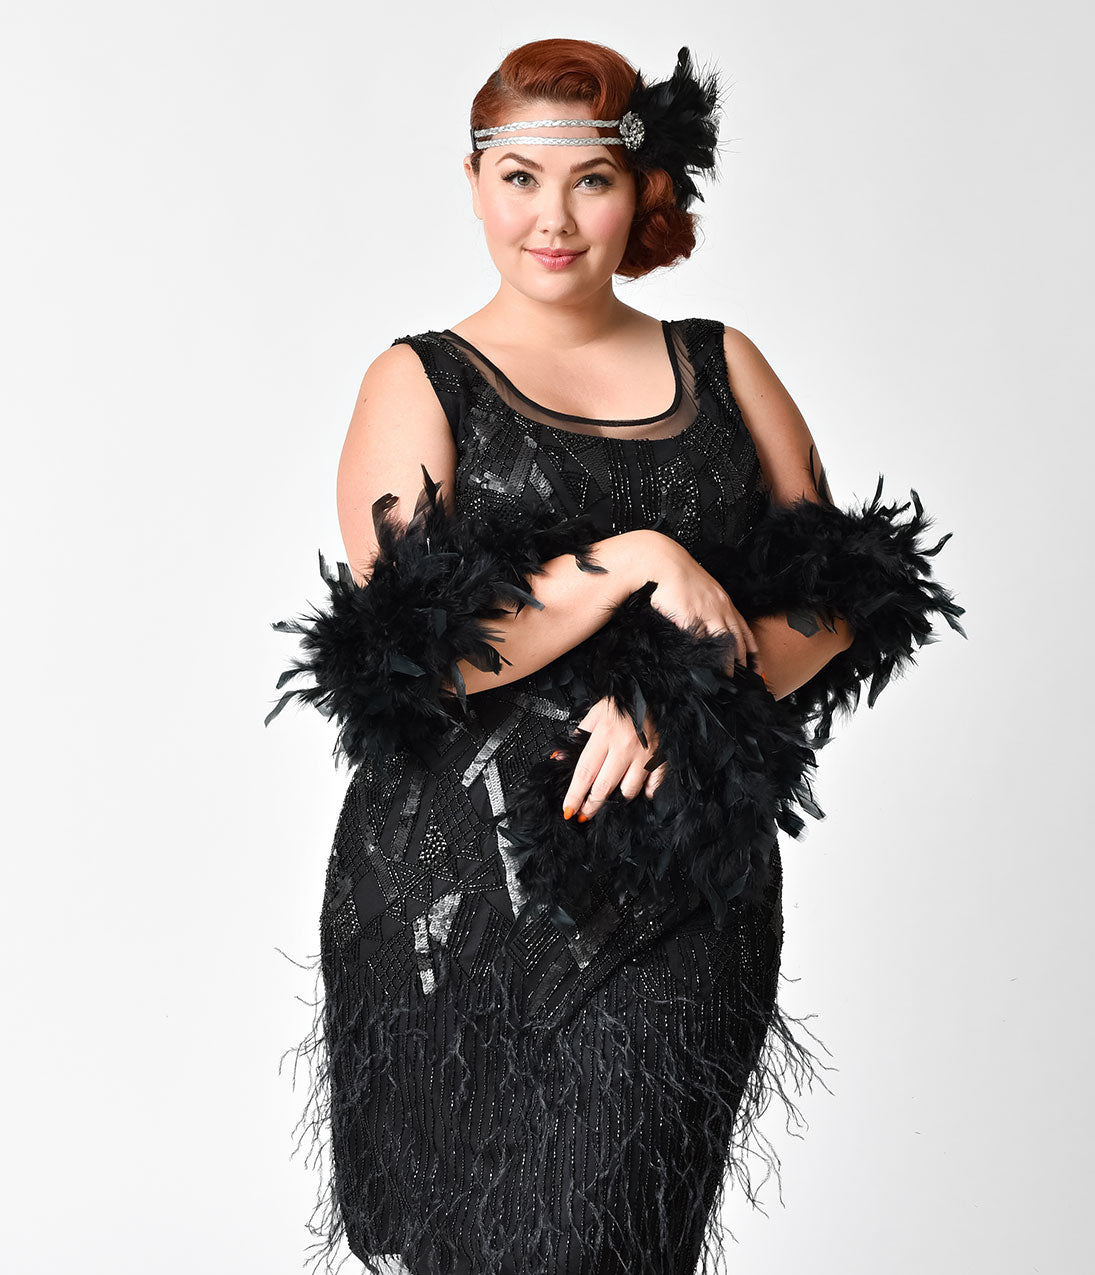 Vintage Scarves- New in the 1920s to 1960s Styles 1920S Inspired Black Feather Boa $14.00 AT vintagedancer.com